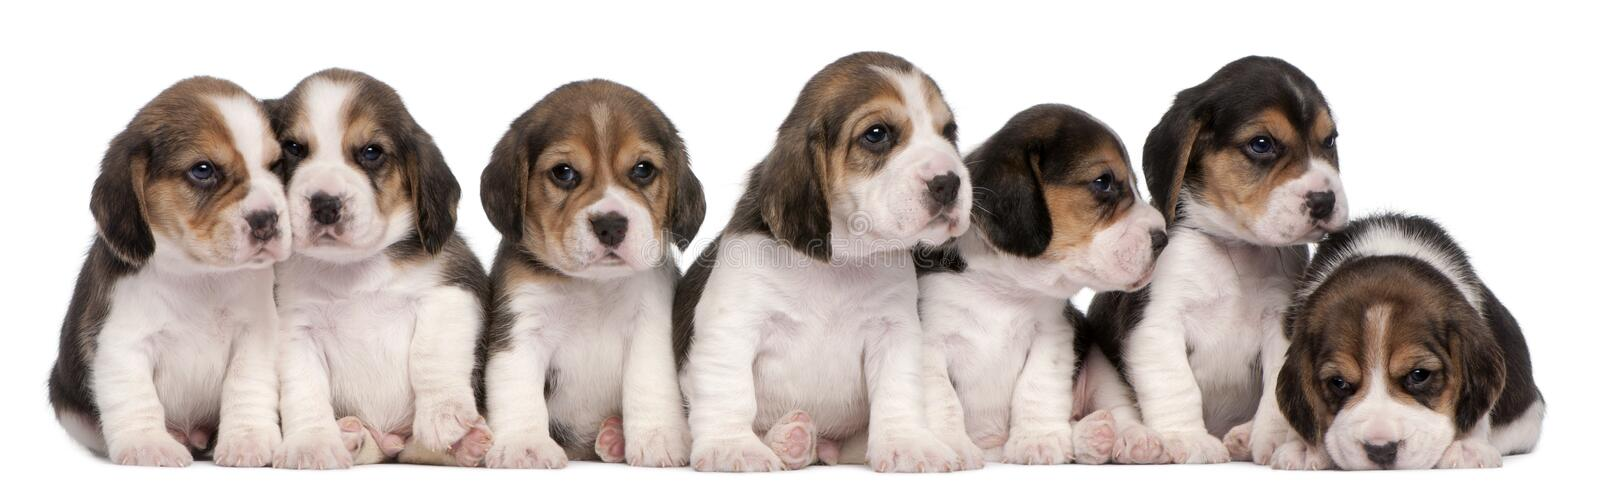 Group of Beagle puppies, 4 weeks old, sitting royalty free stock photo